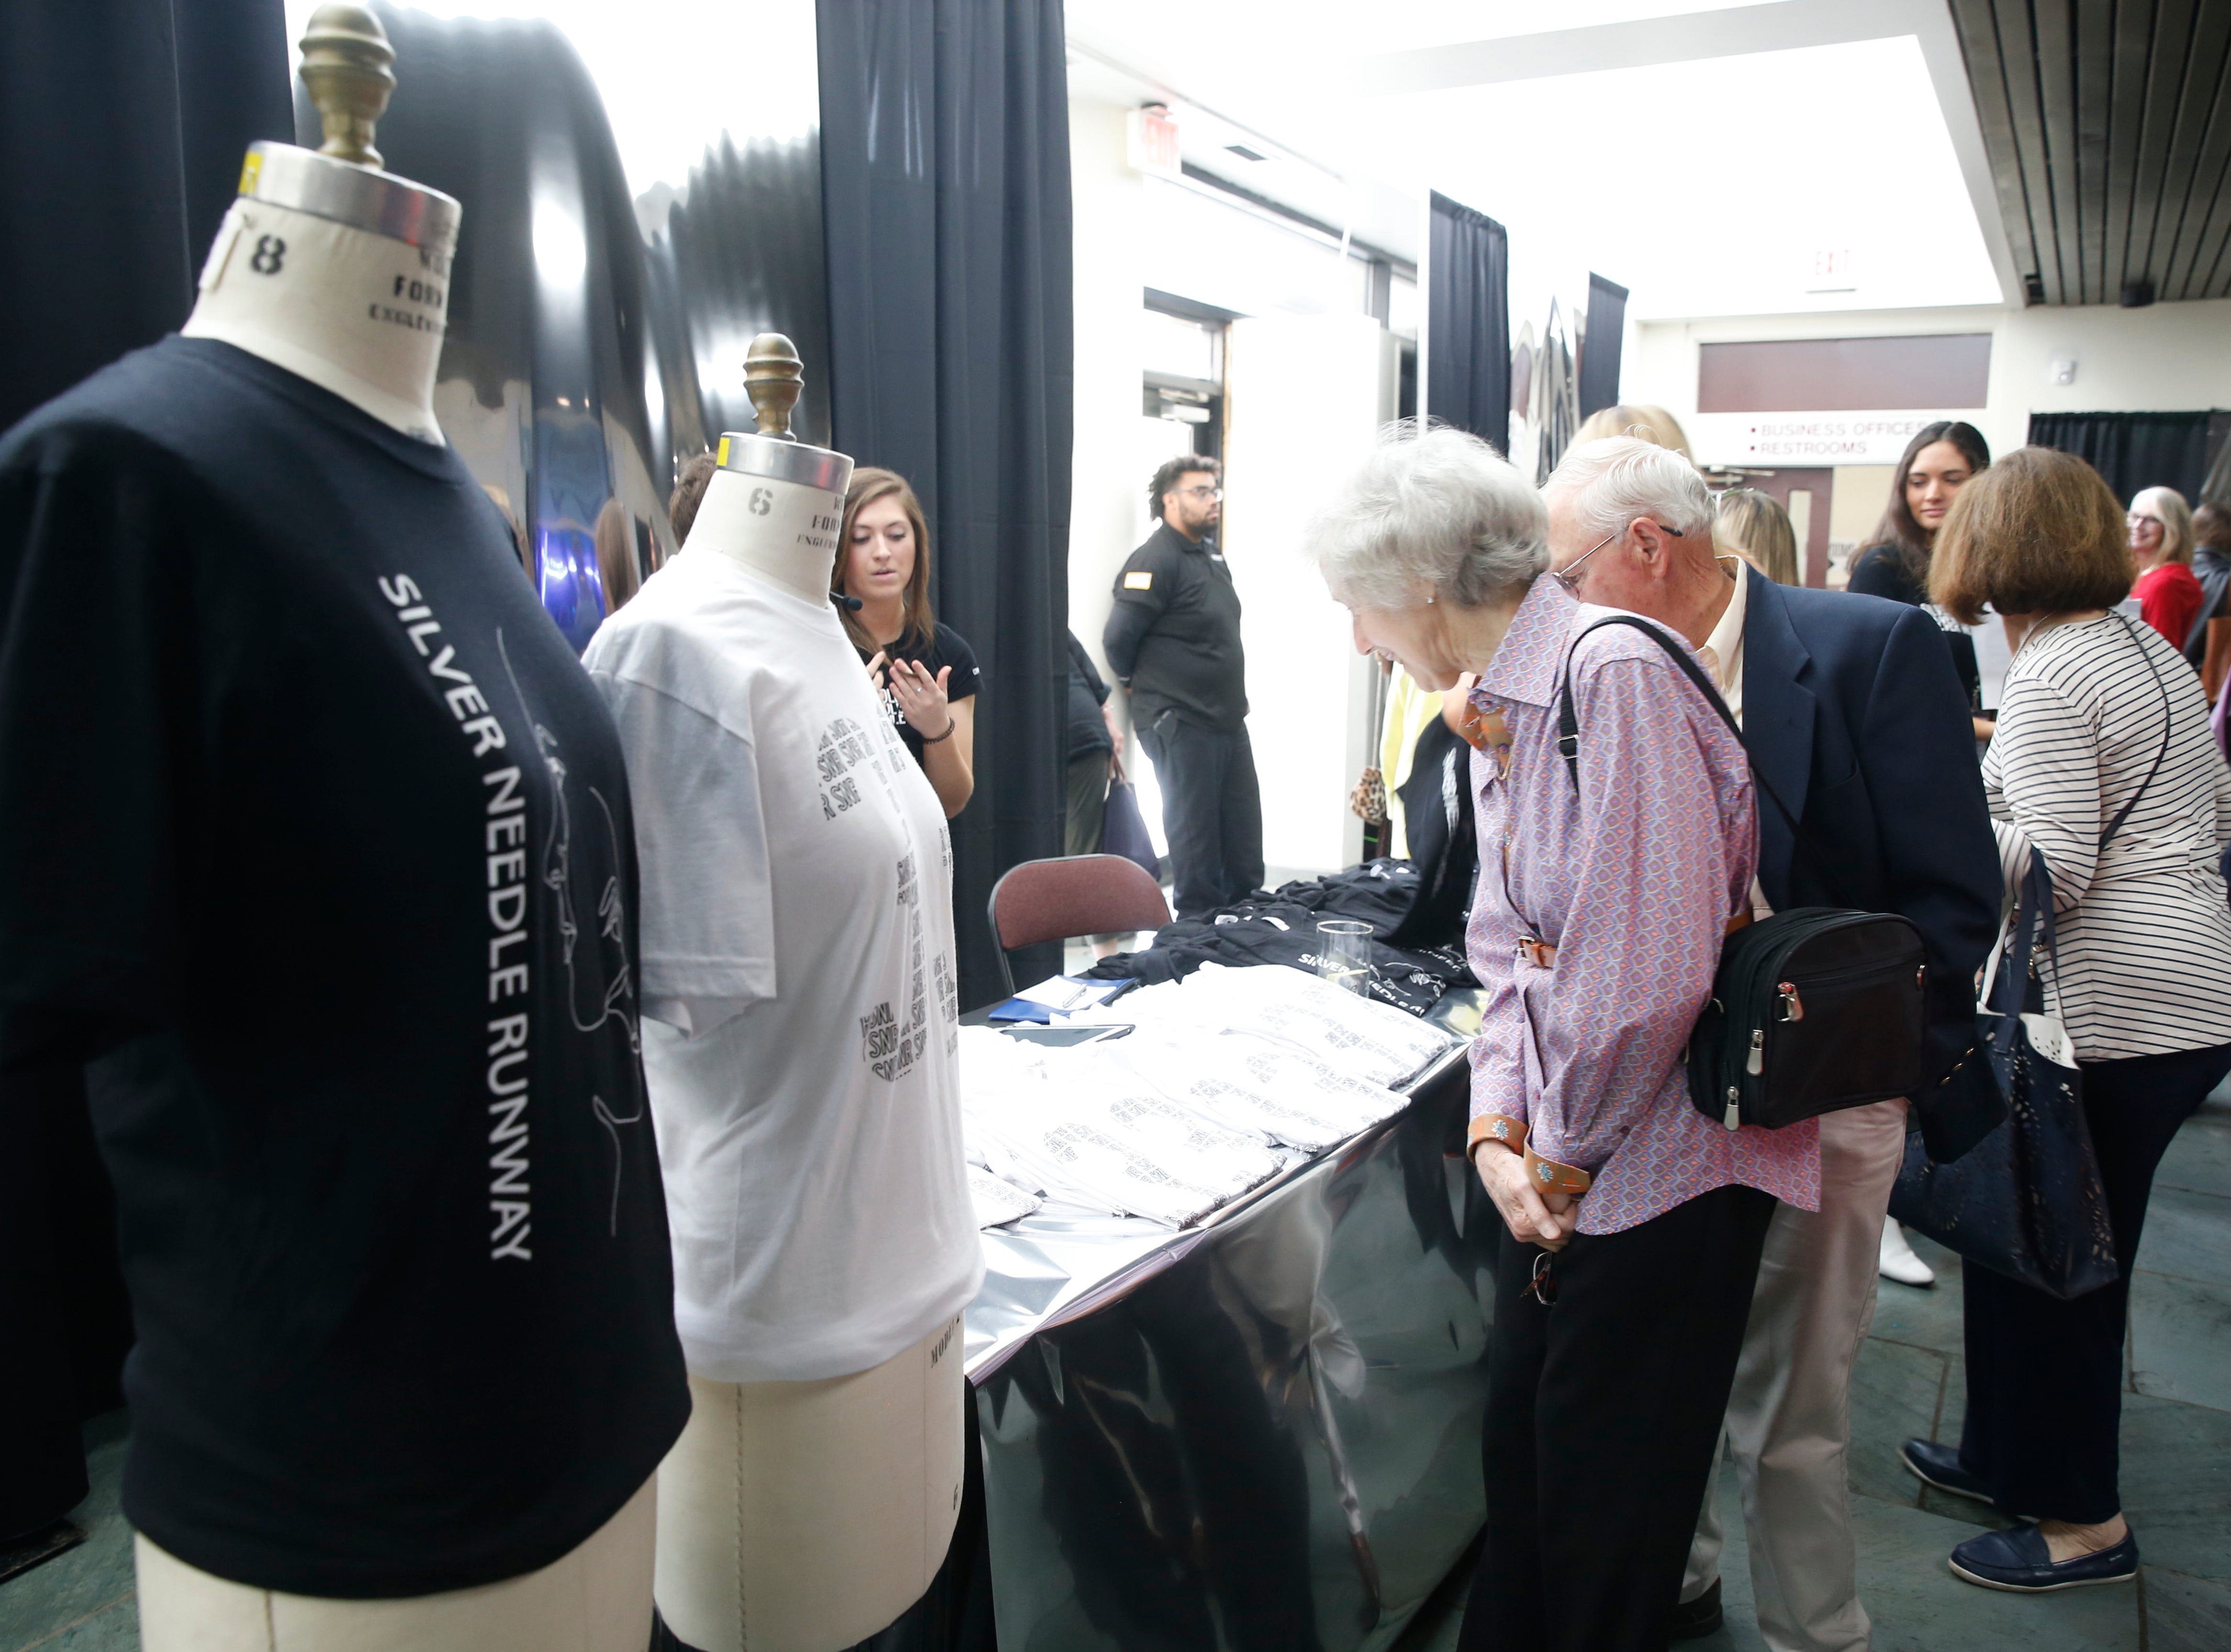 Susan and Jack Pretak of Hyde Park browse the merchandise tables before the start of the 33rd Marist College Silver Needle Runway Show on May 10, 2019.